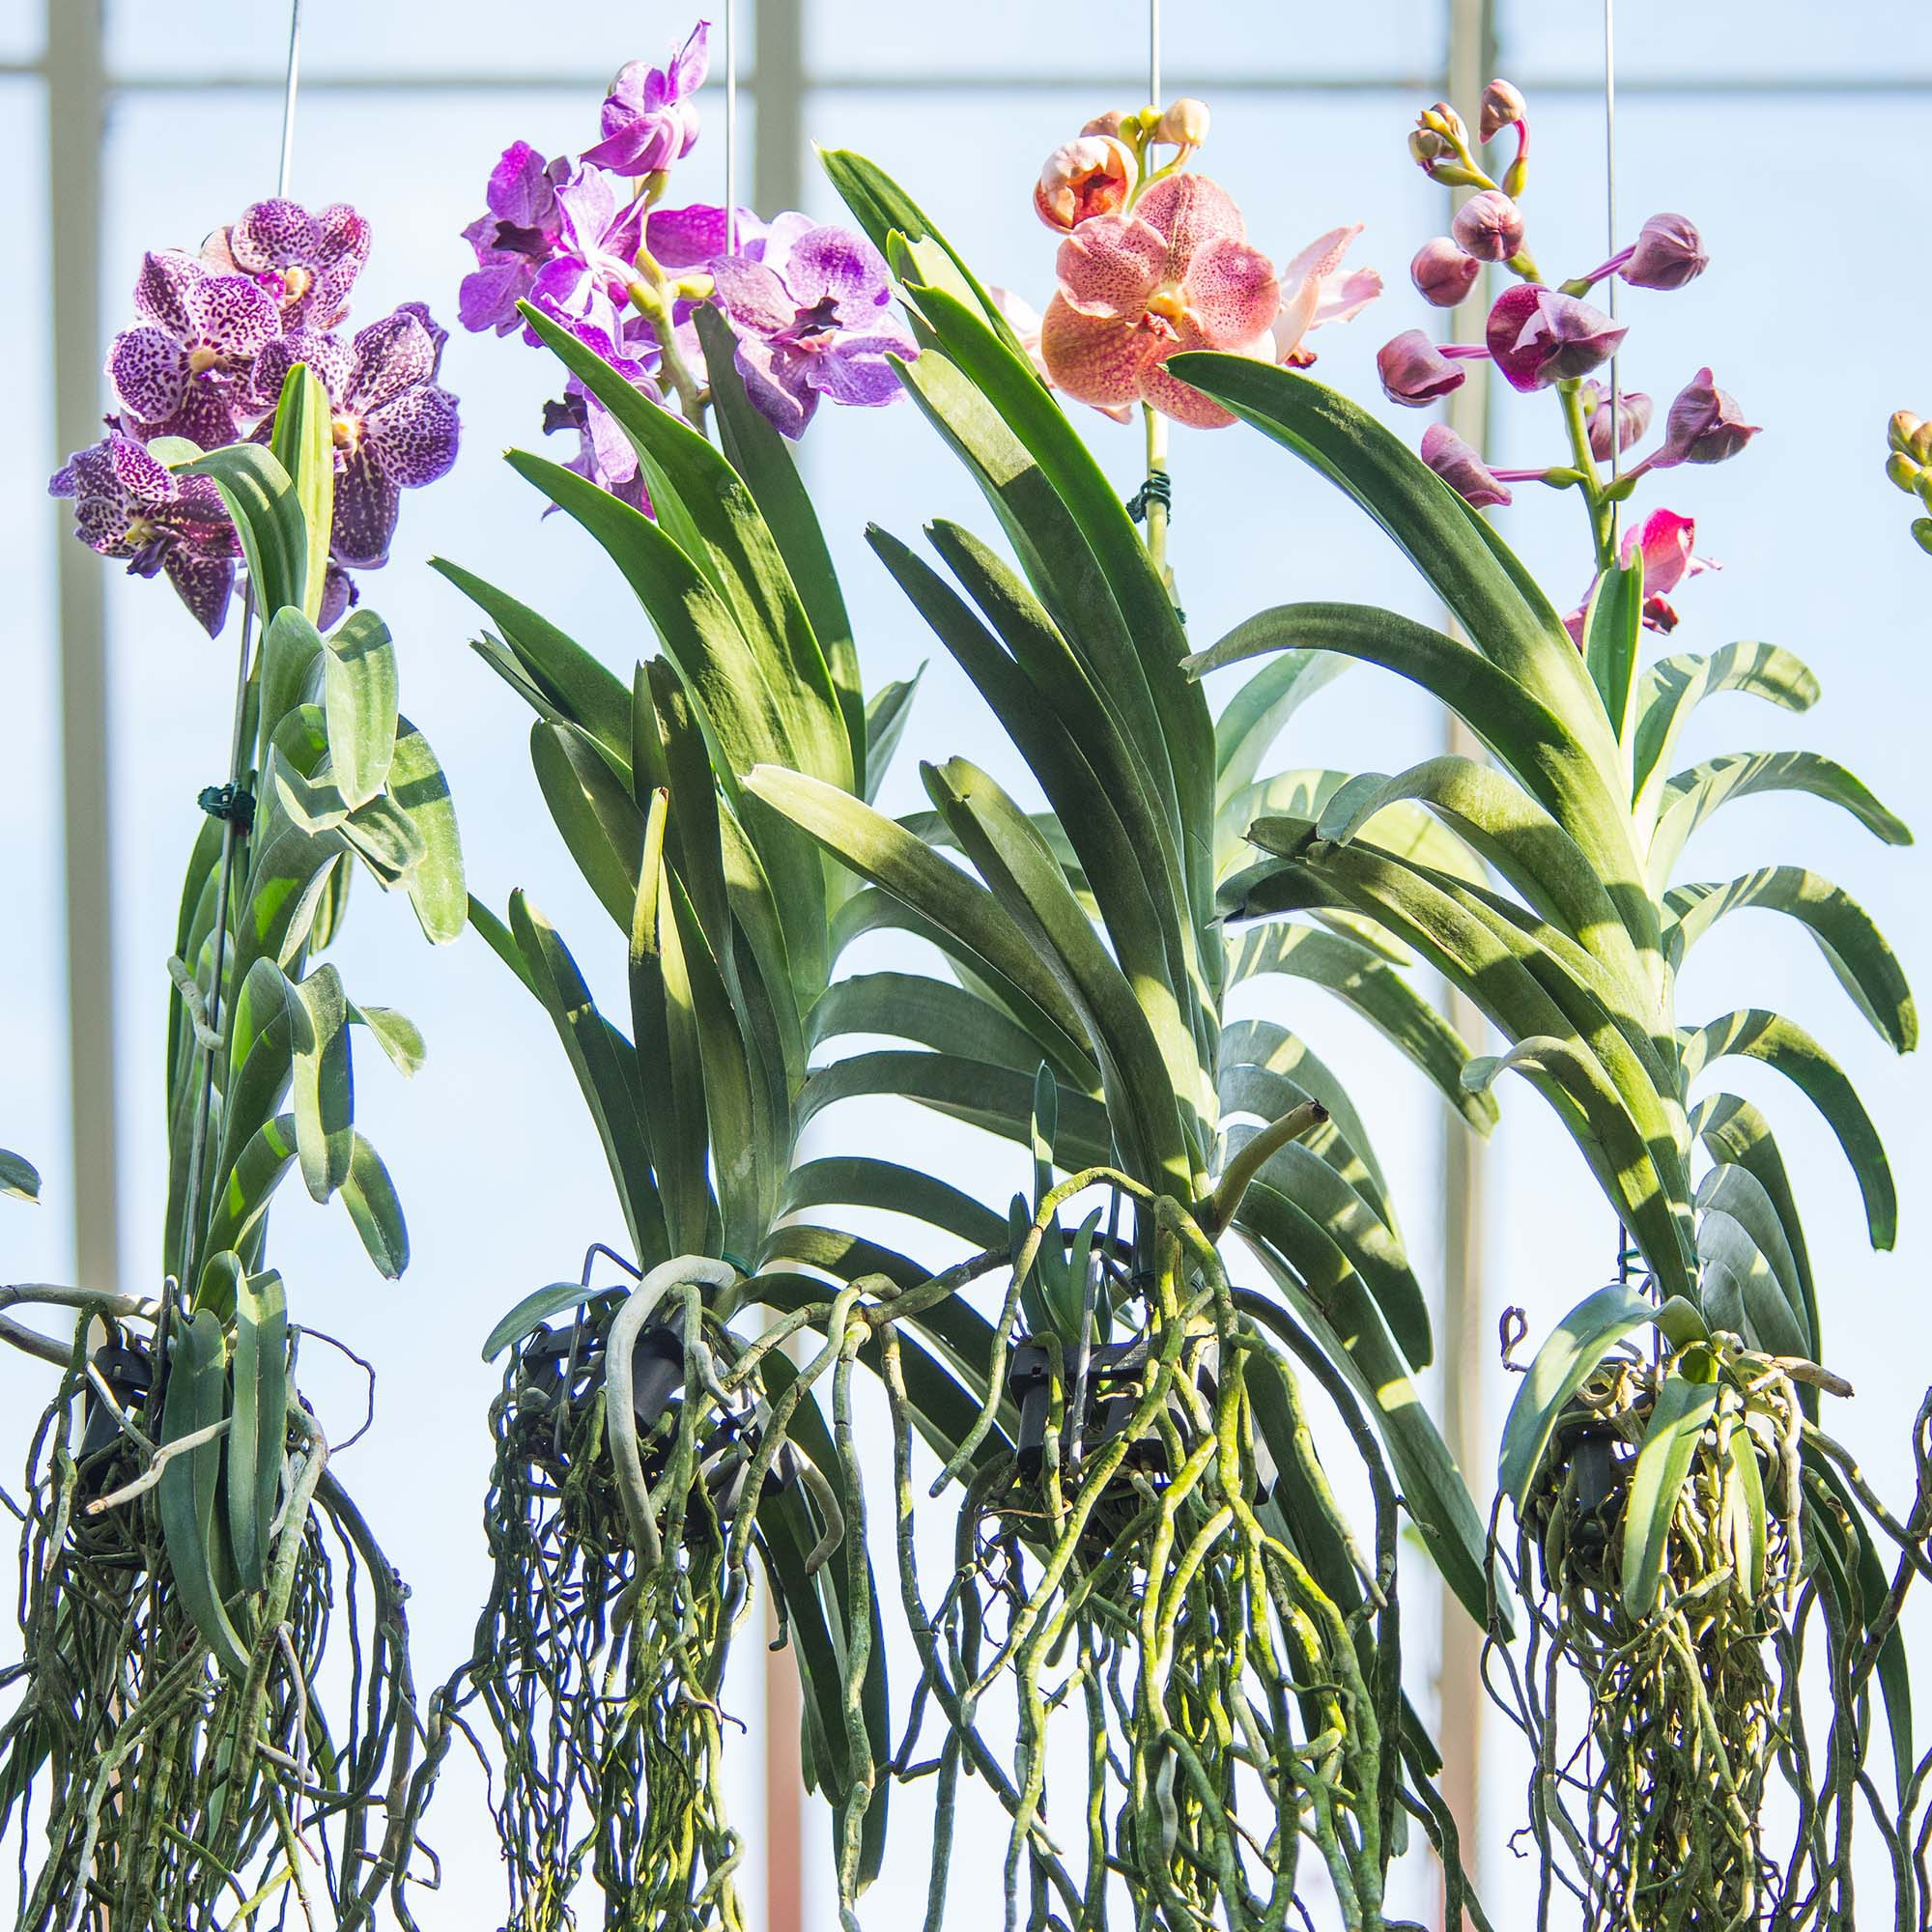 Test Your Orchid Iq Mdash How Do Roots Work Ndash My Chicago